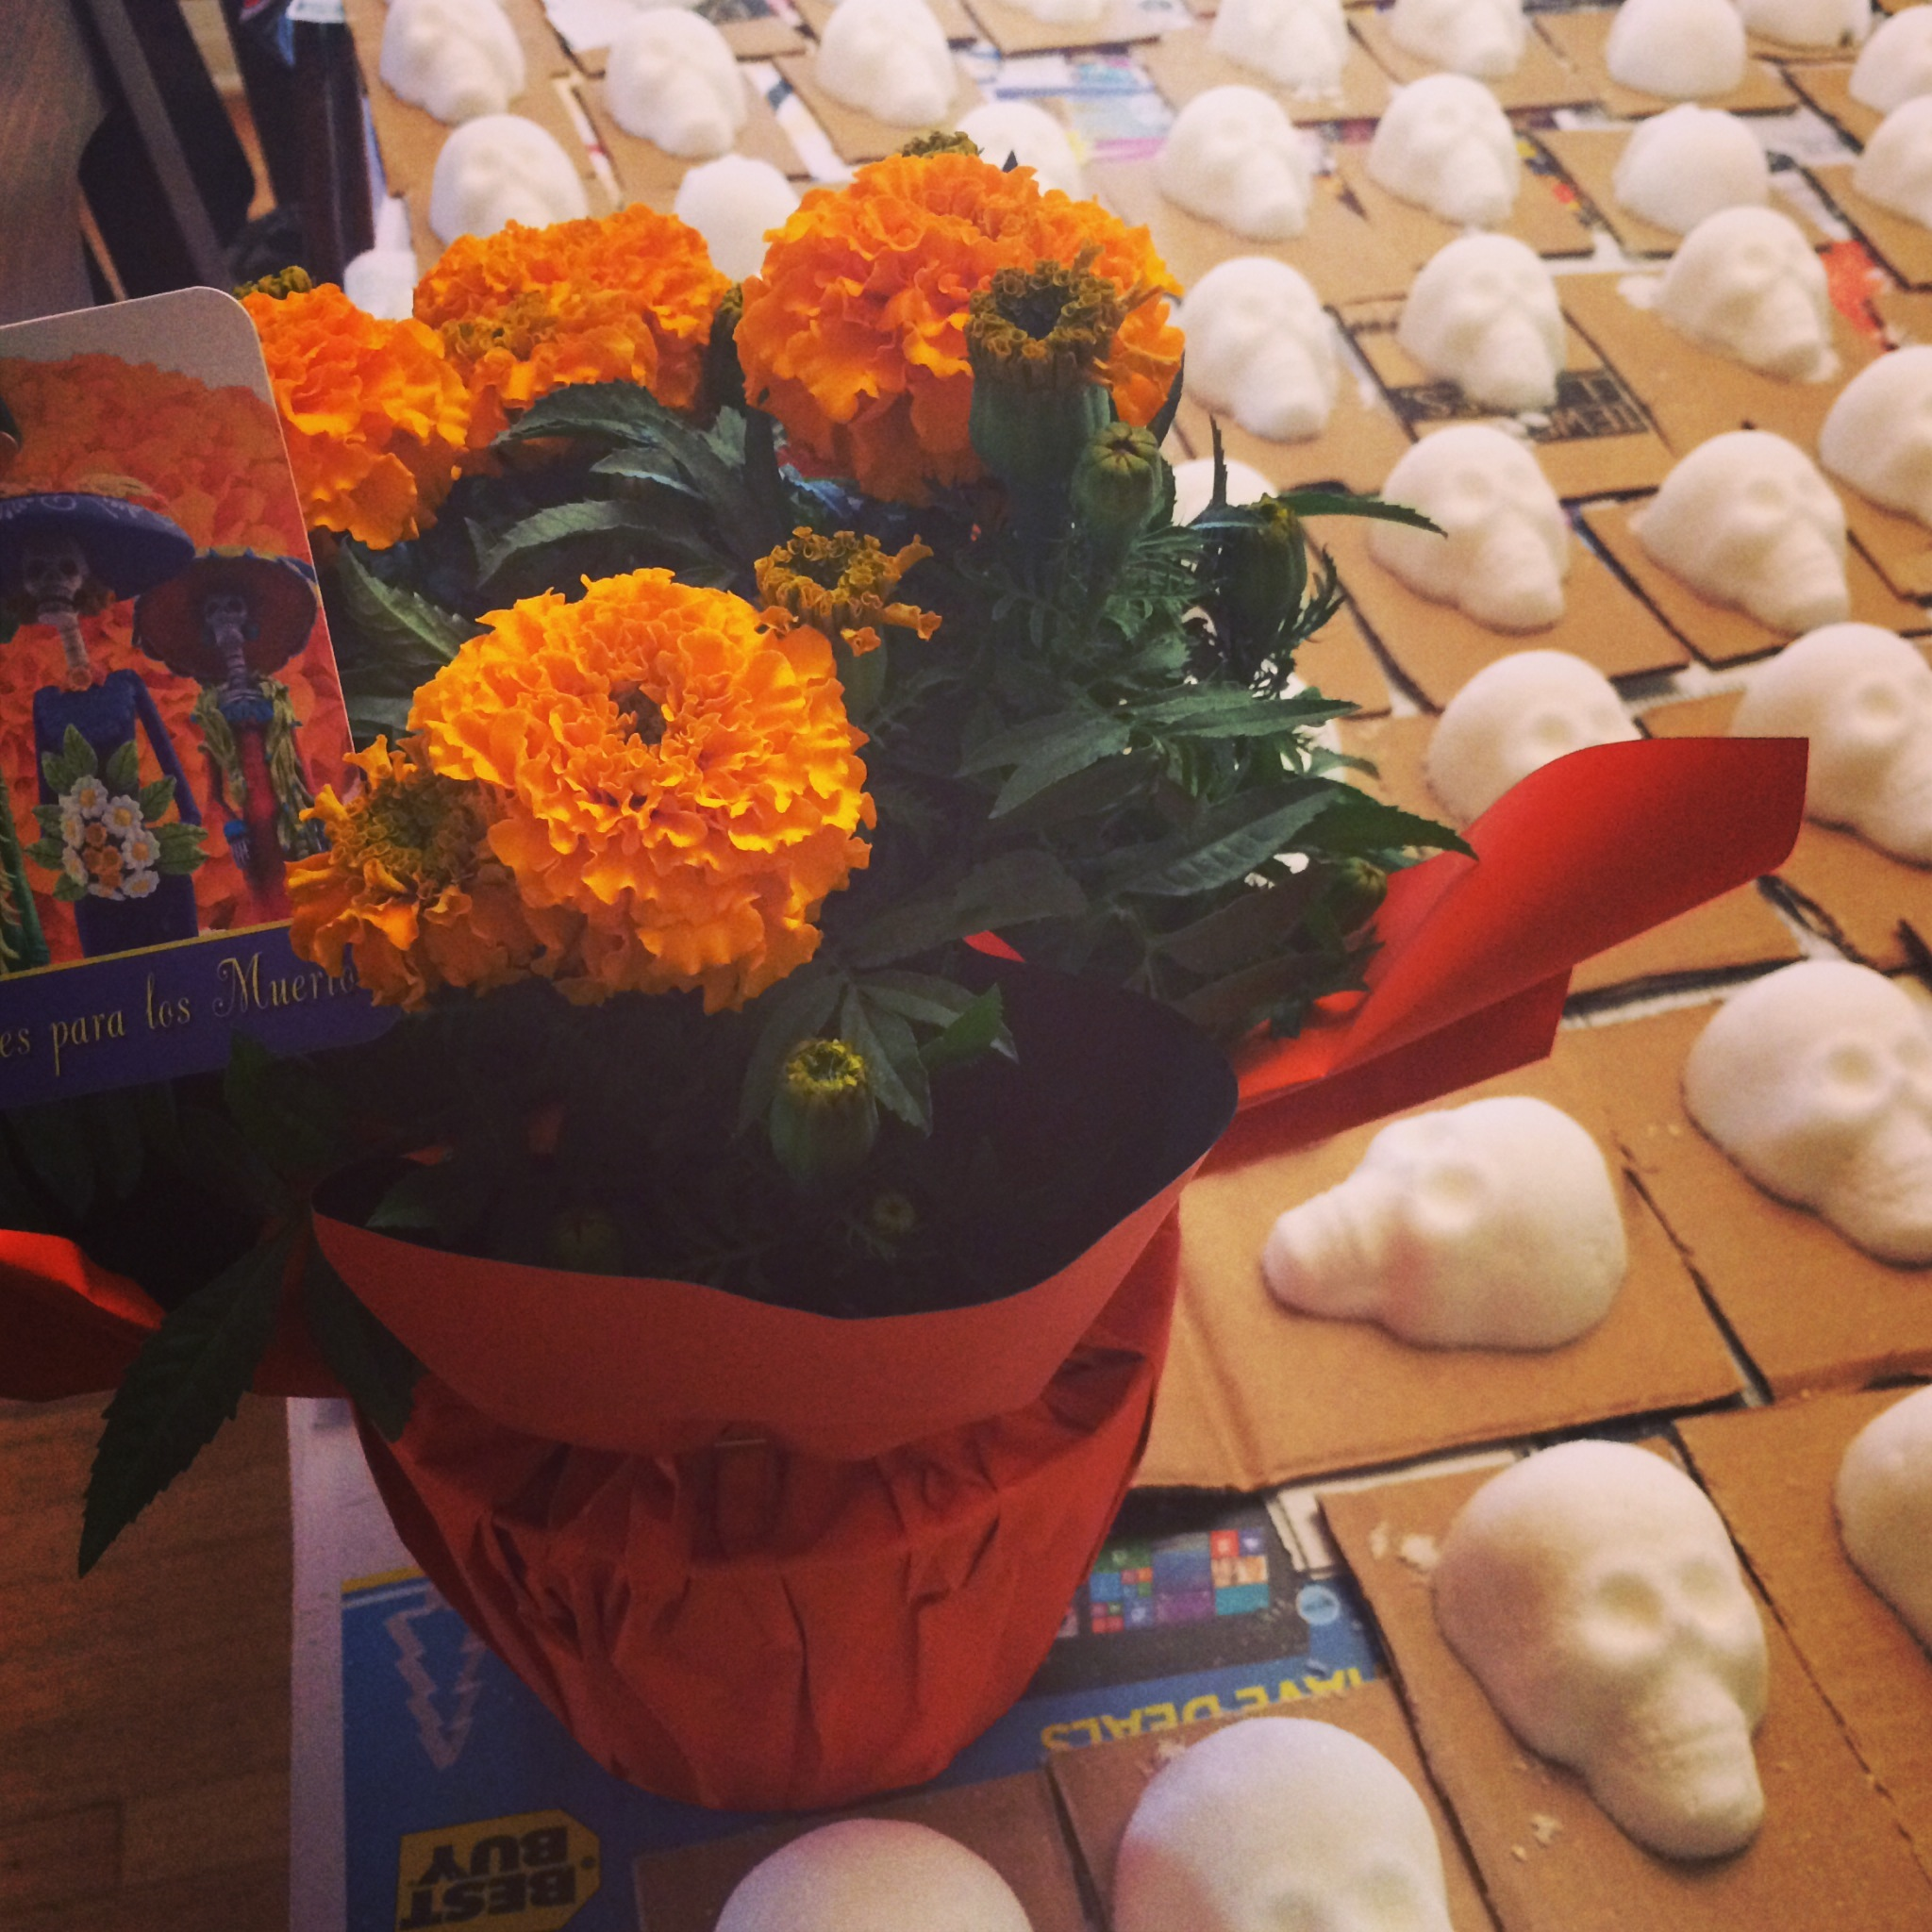 Marigolds for Muertos